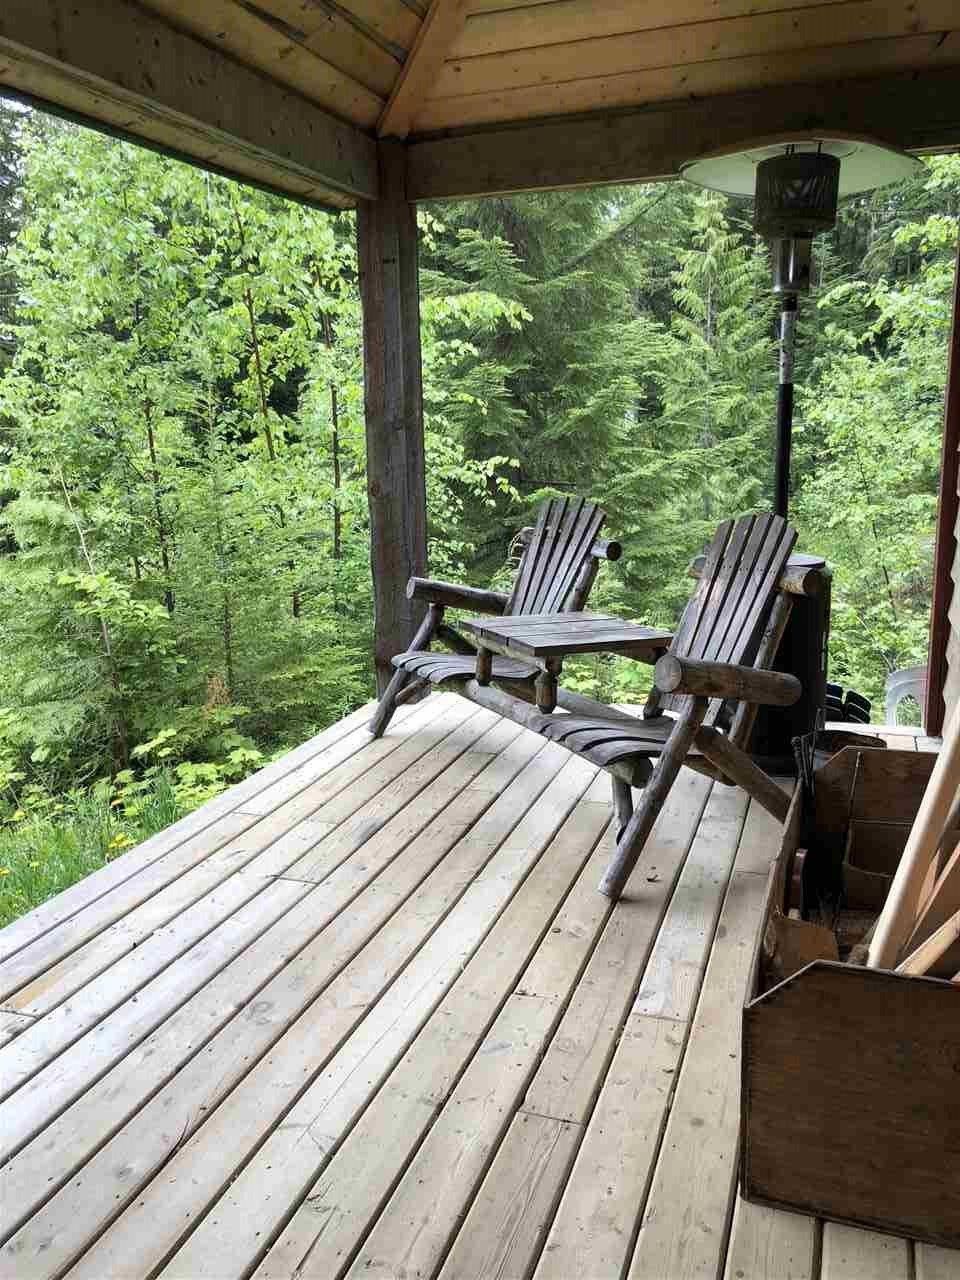 Photo 6: Photos: 5660 MARSHALL CREEK Road: Horsefly House for sale (Williams Lake (Zone 27))  : MLS®# R2277044